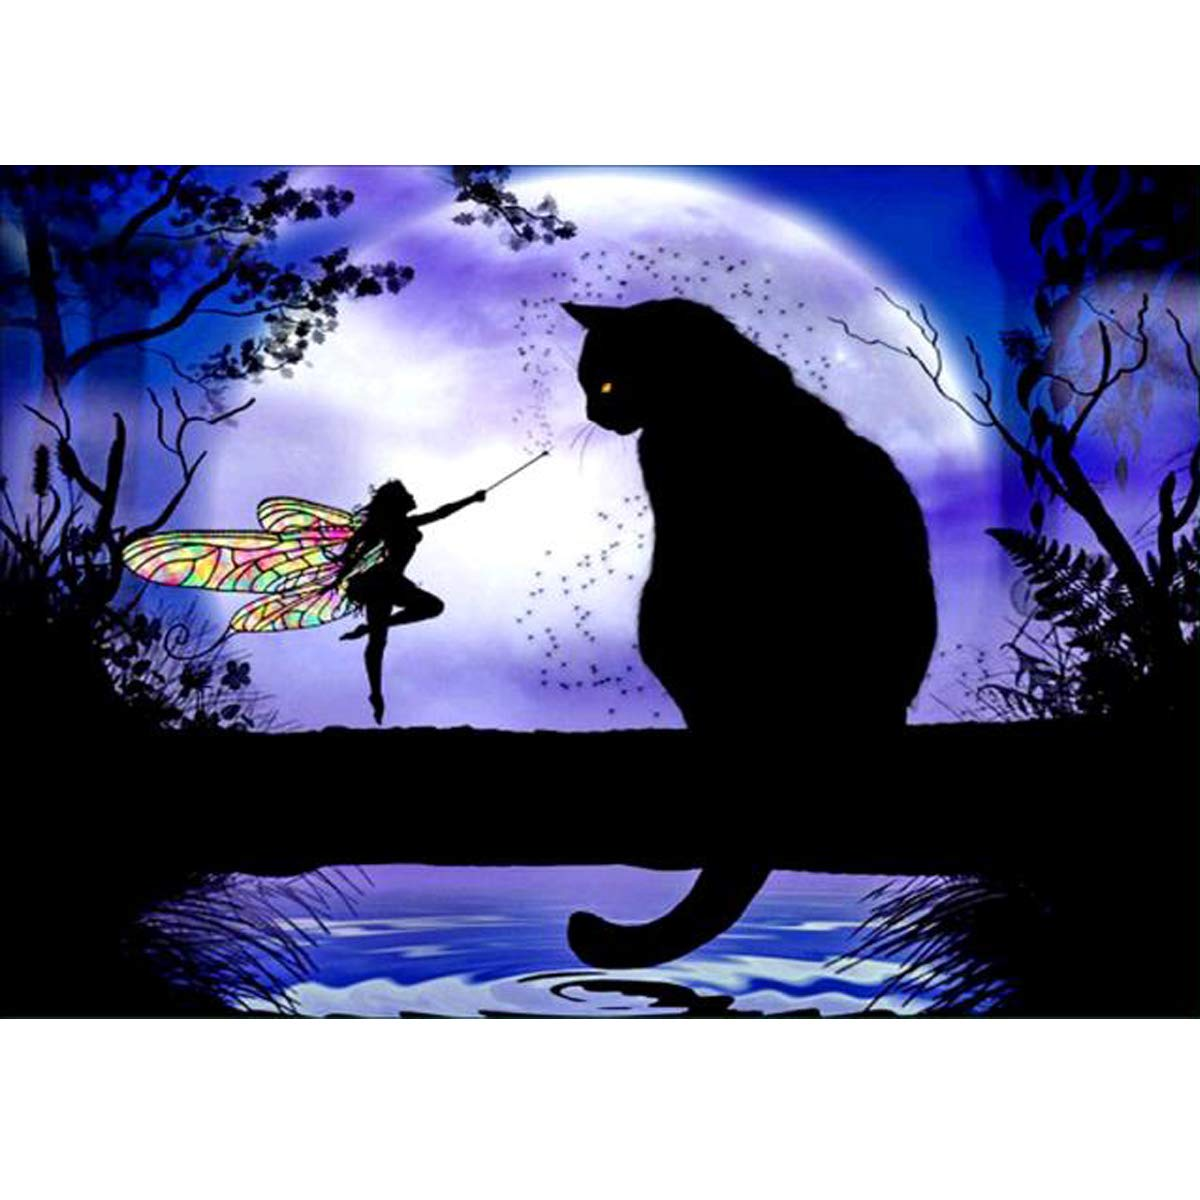 5D Diamond Painting Full Round Drill Kits for Adults Pasted Embroidery Cross Stitch Arts Craft for Home Wall Decor Elf and Black Cat 12x16in